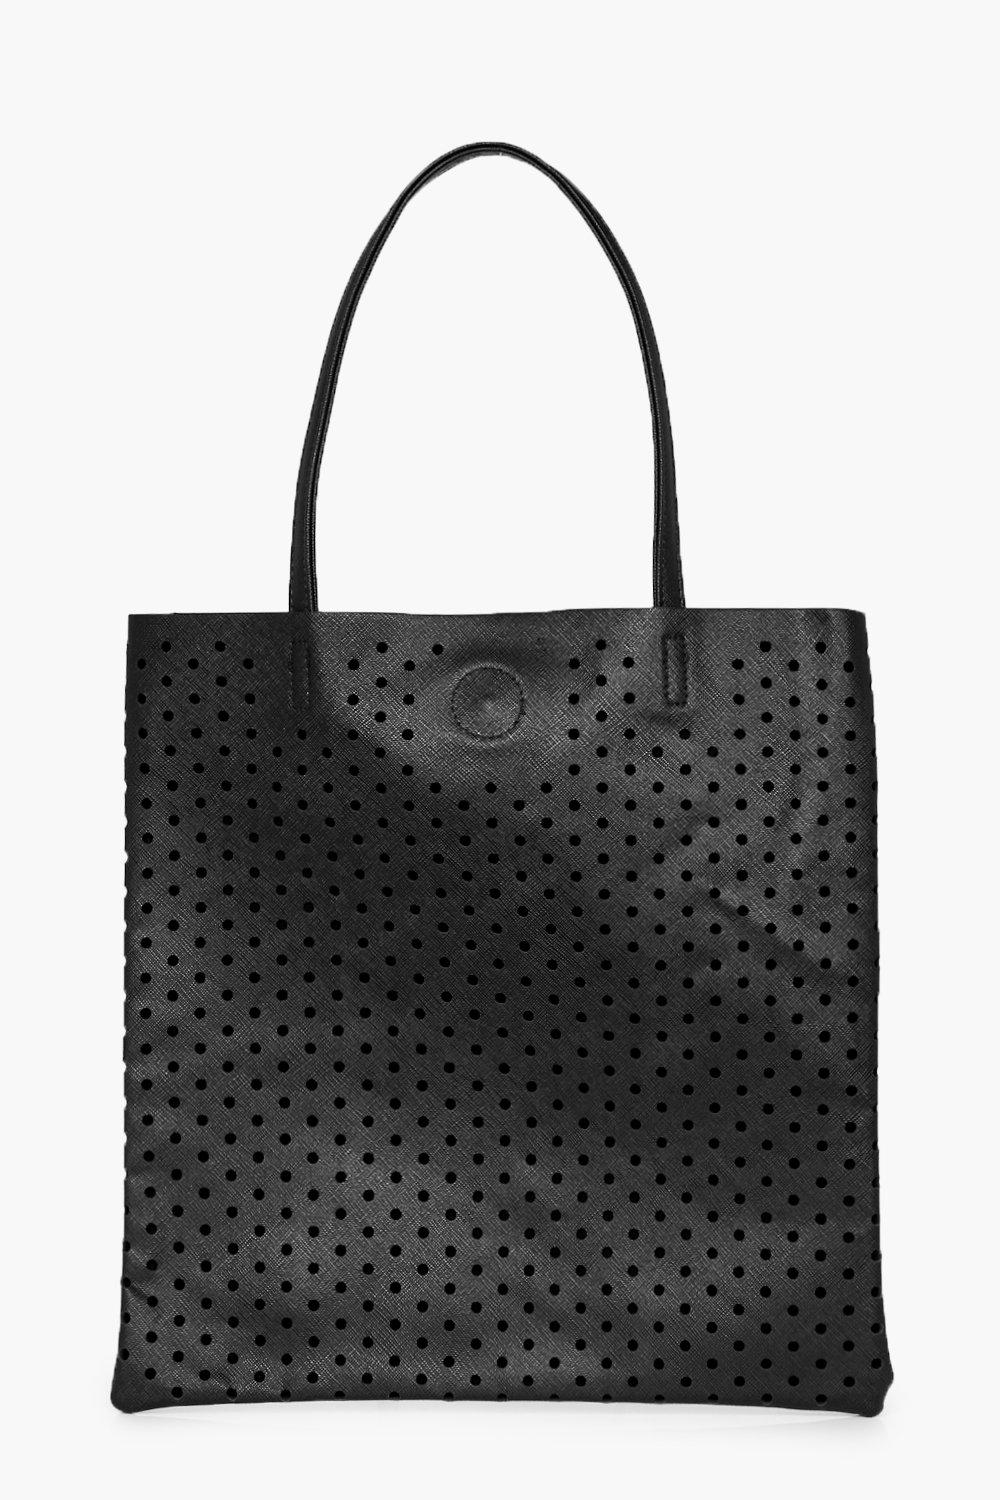 Lazercut Perforated Shopper Bag - black - Macie La